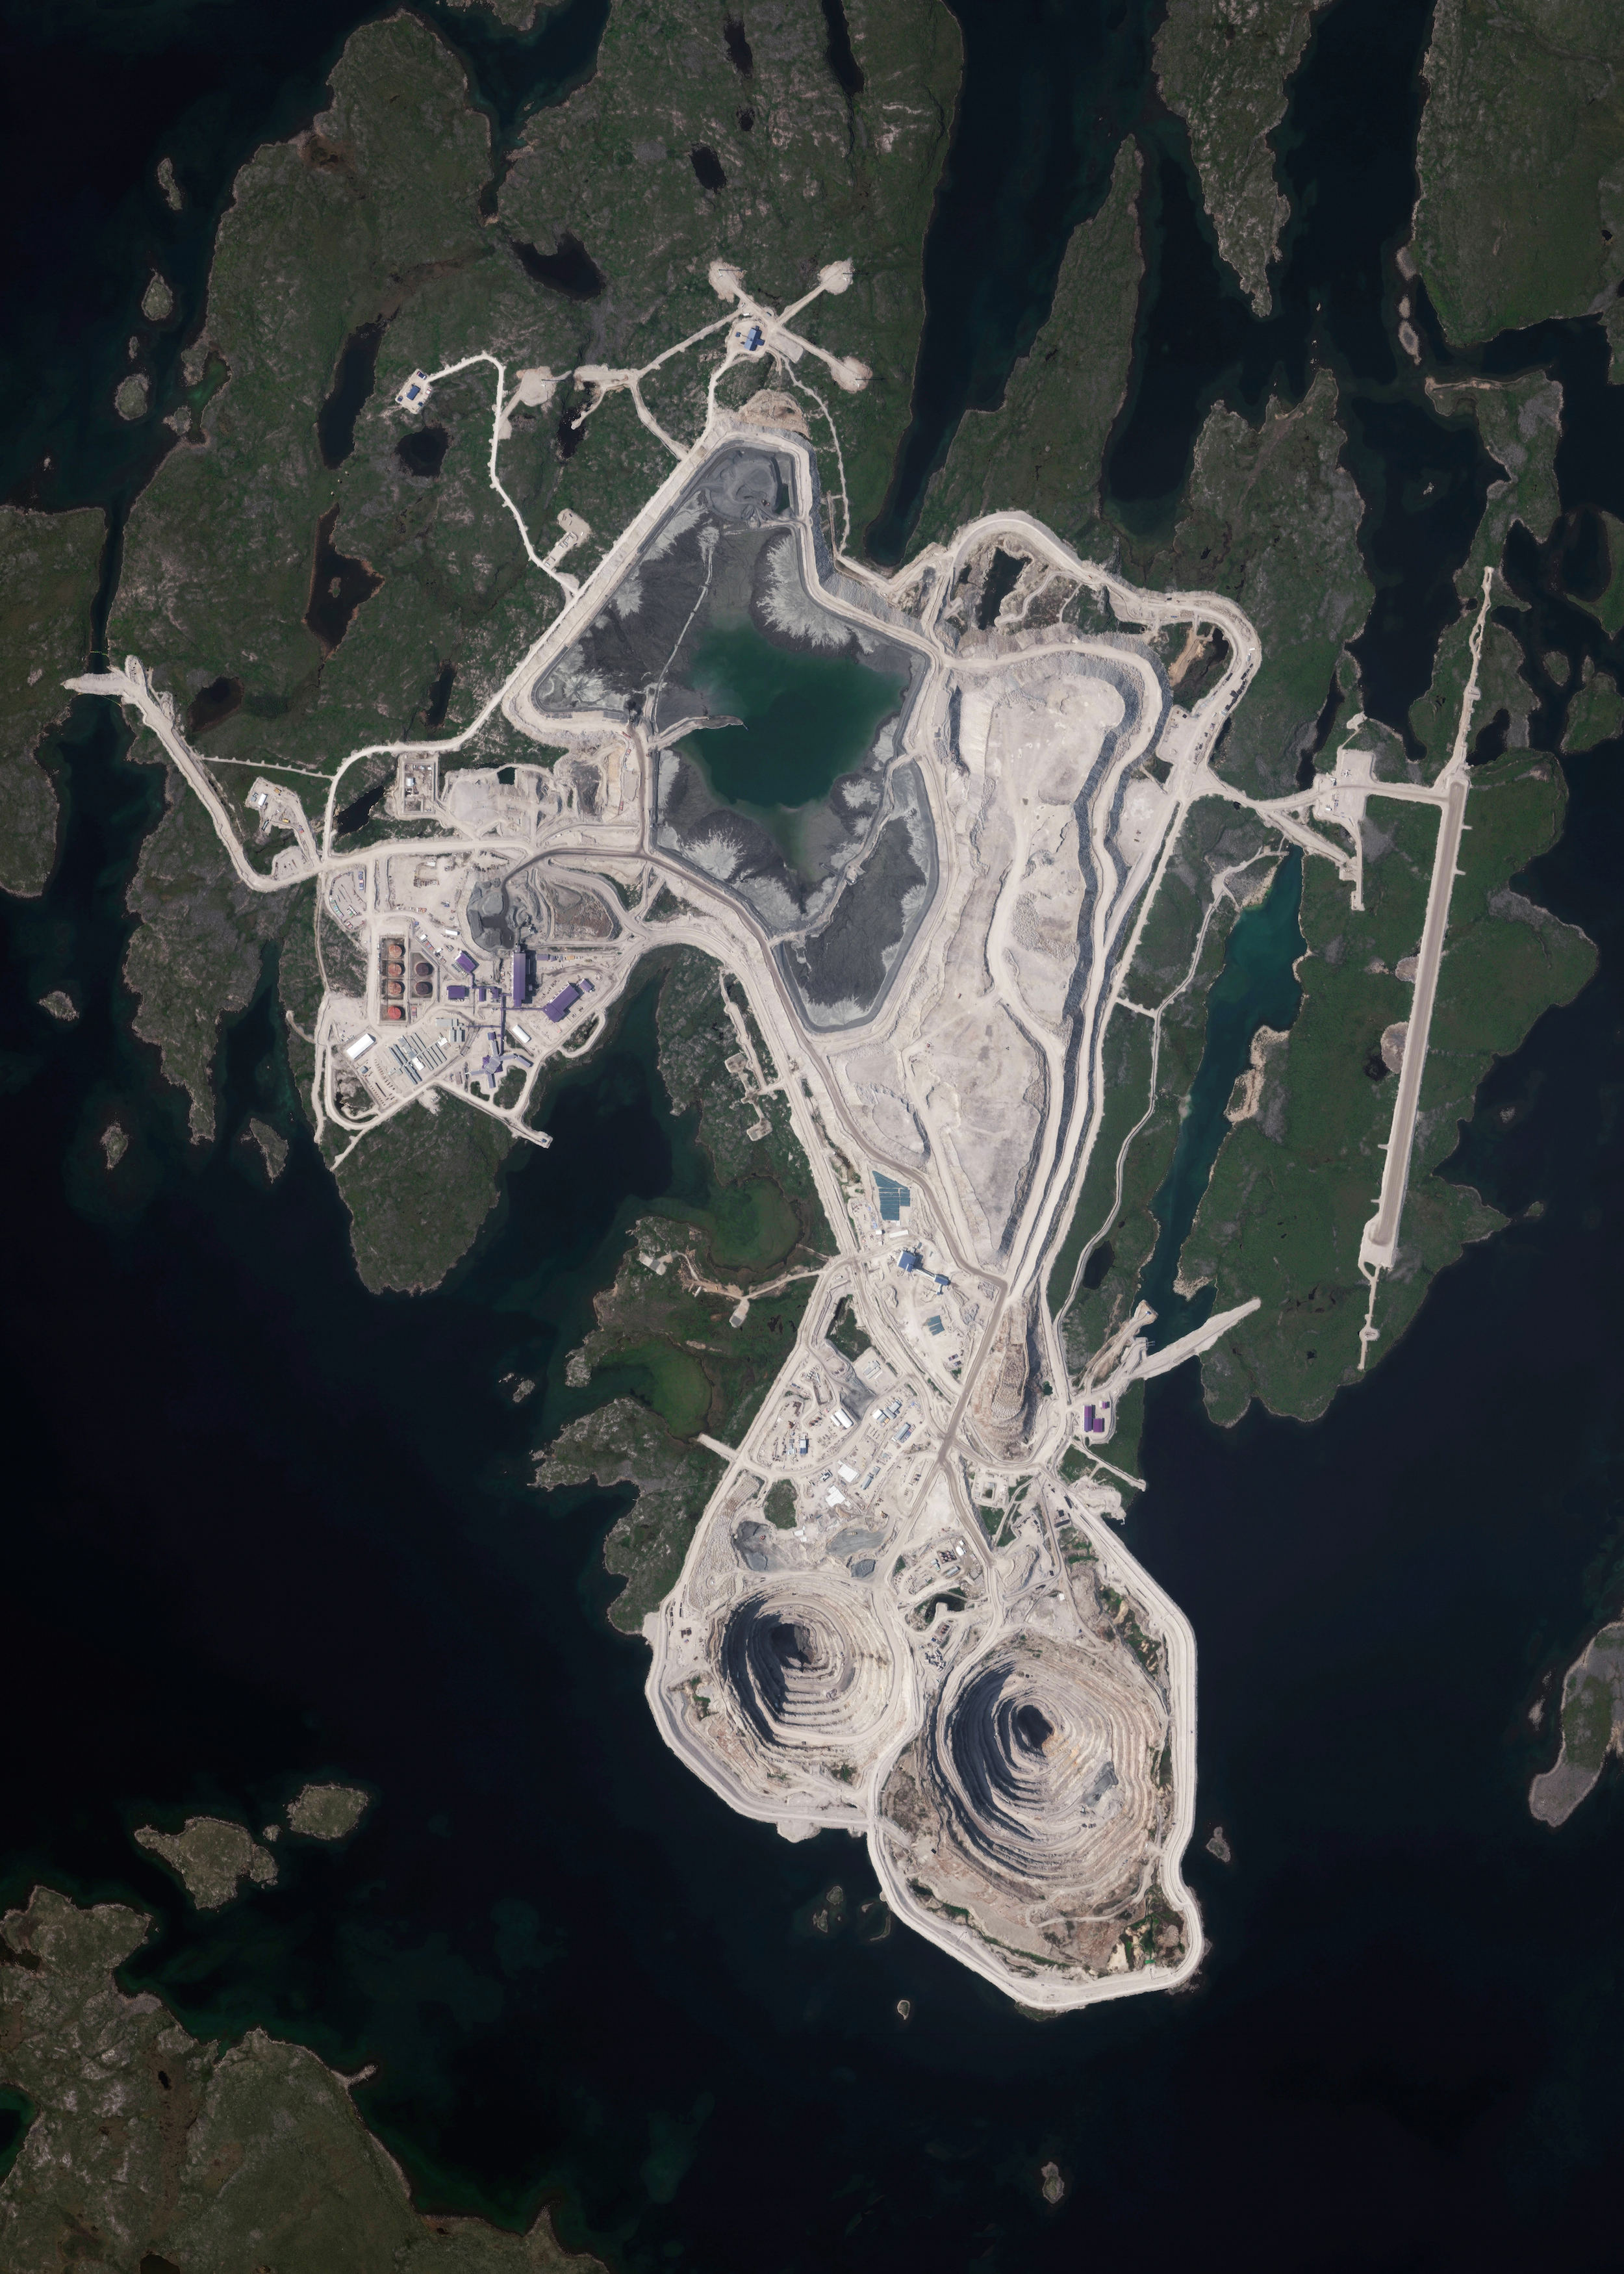 11/18/2015   Diavik Diamond Mine    Northwest Territories, Canada   64.496111100°, -110.273333300°    The Diavik Diamond Mine is located on the Lac de Gras lake in the Northwest Territories of Canada, 120 miles (193km) south of the Arctic Circle. The mine produces approximately 7.5 million carats of diamonds each year. In standard weight, that's an annual output of 1500 kilograms or 3,300 pounds. In this Overview, the most distinguishable areas of the facility are its two primary open pits, waste ponds, processing facilities, and an airstrip capable of landing aircraft as large as 737s and C-130s.